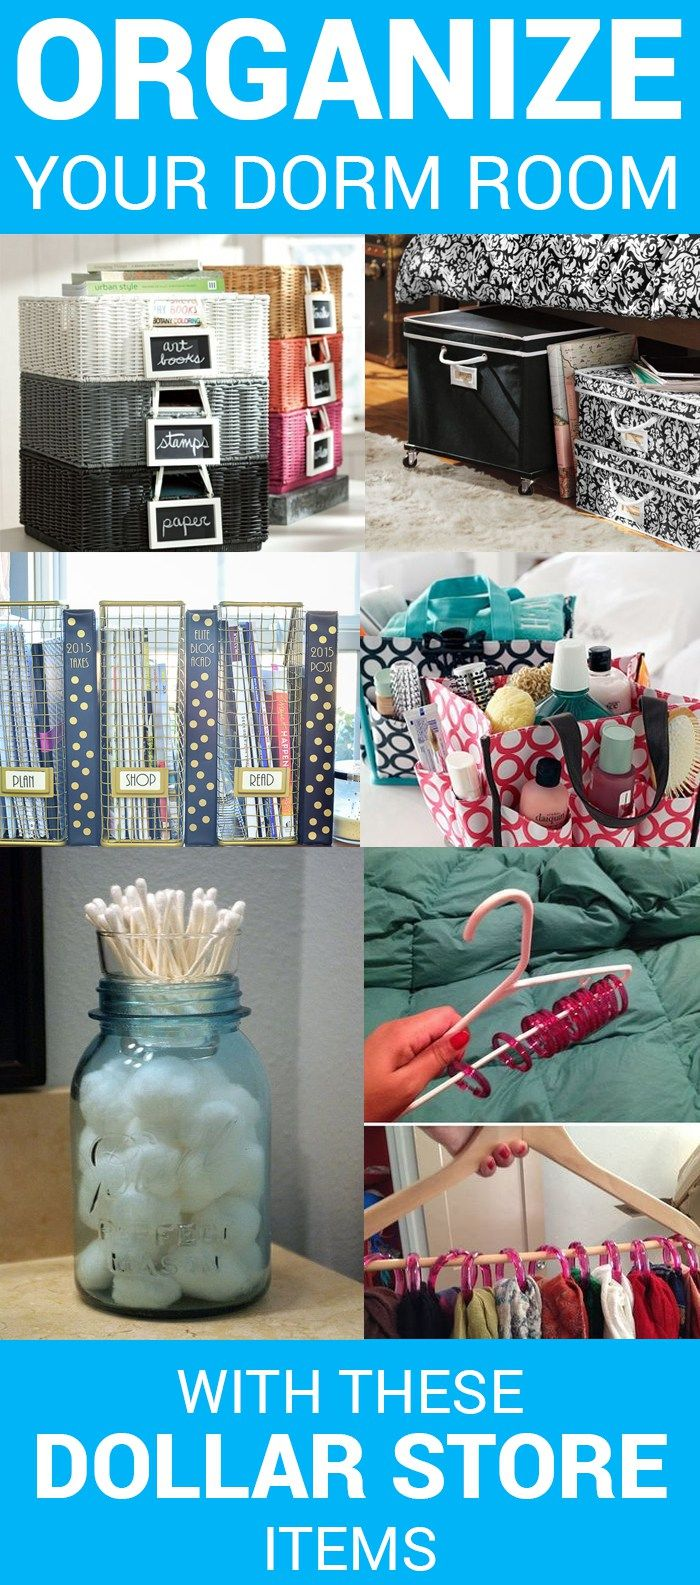 Organize Your Dorm Room With These 6 Dollar Store Items